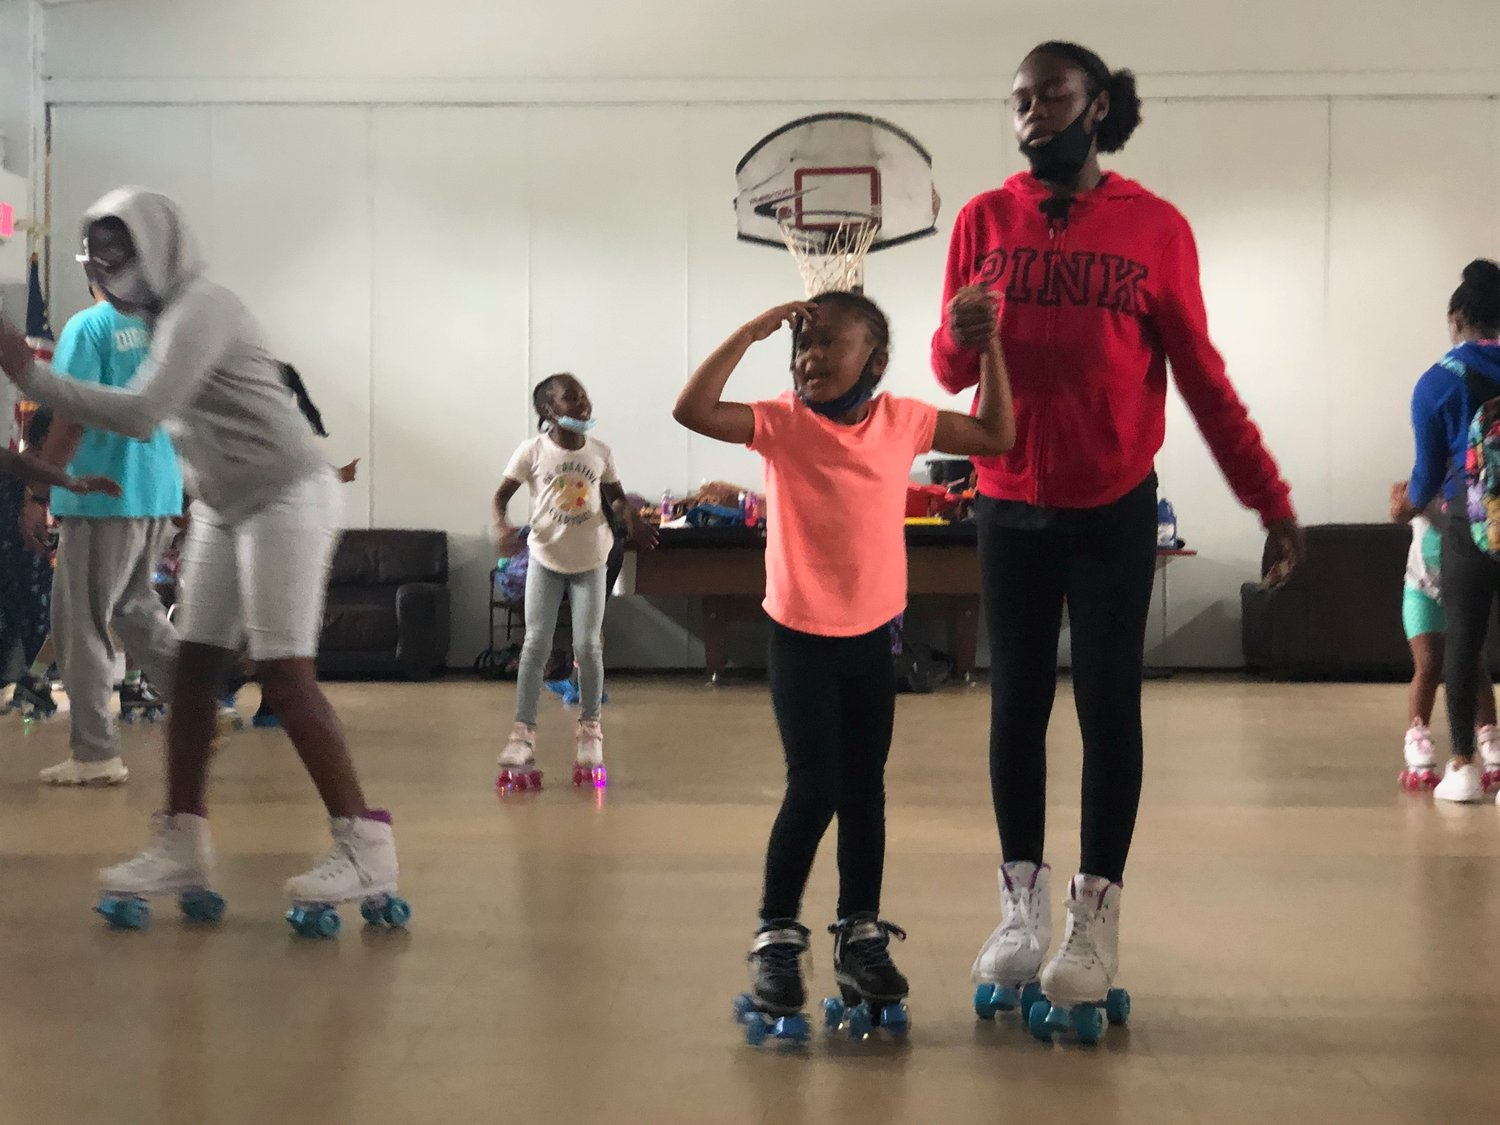 Shyanna Morris, 14, right, roller skated at the MLK Center with Leah Long.